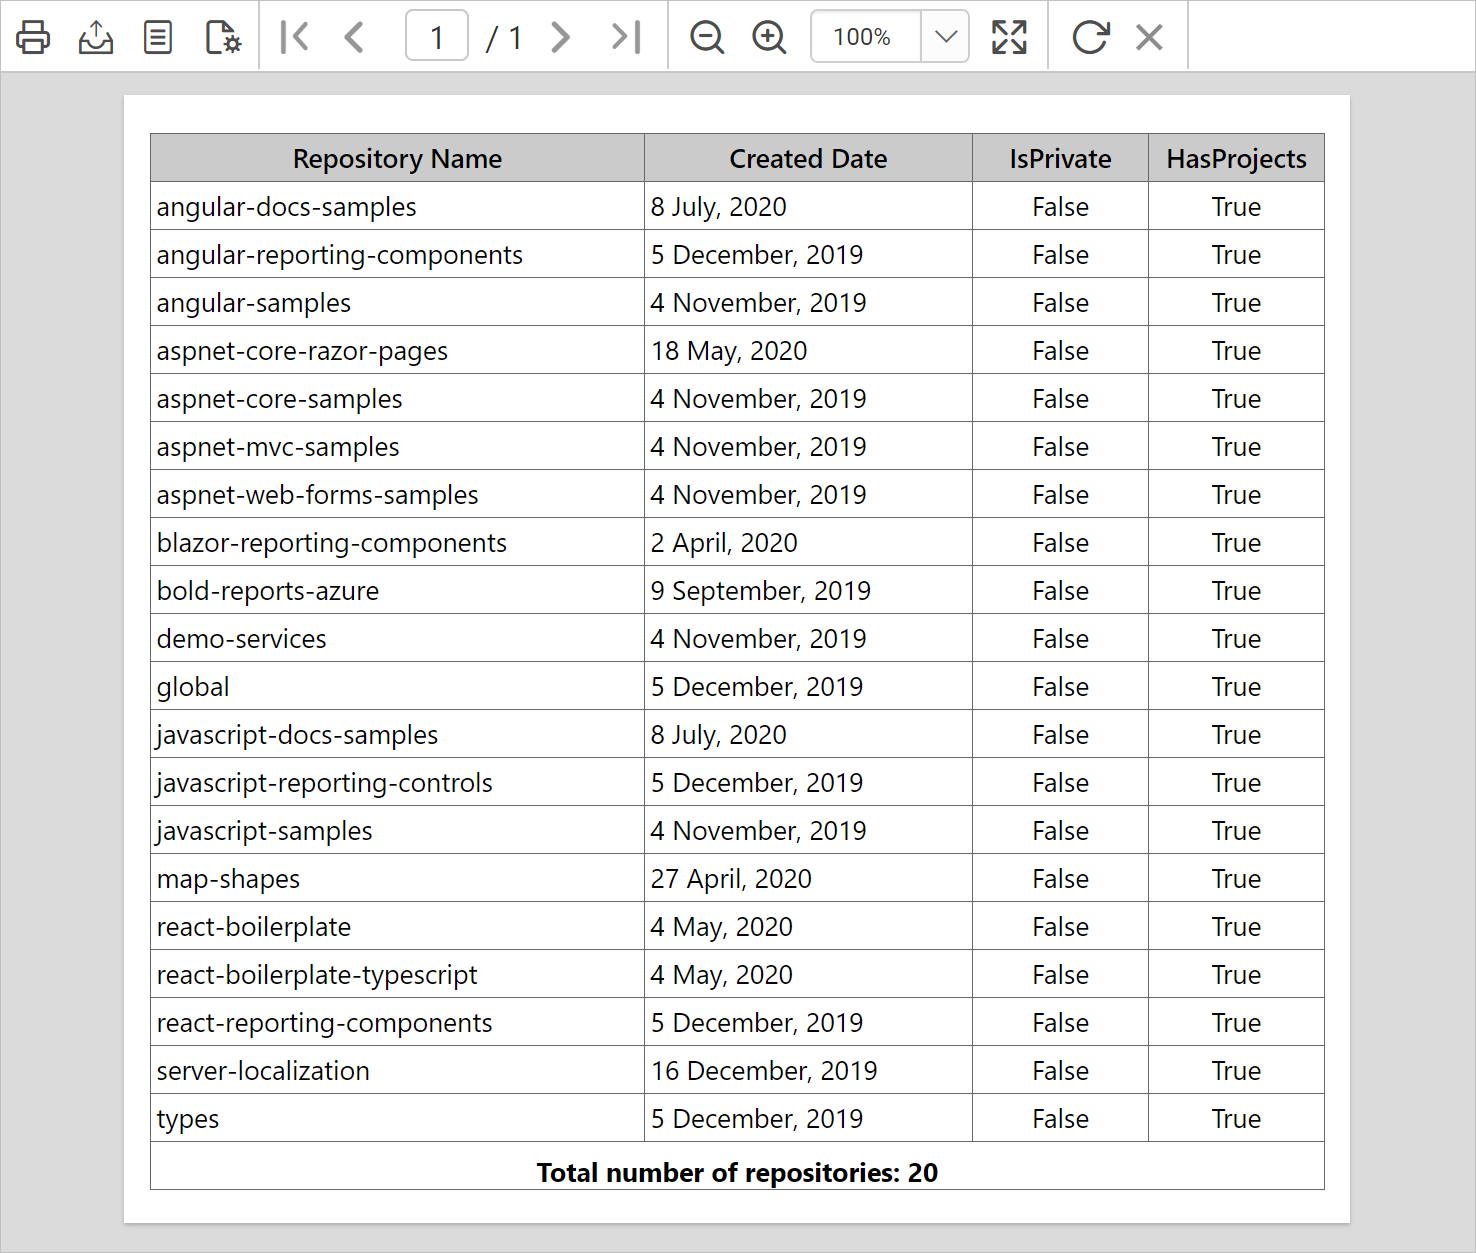 Report displaying the detail records of repositories